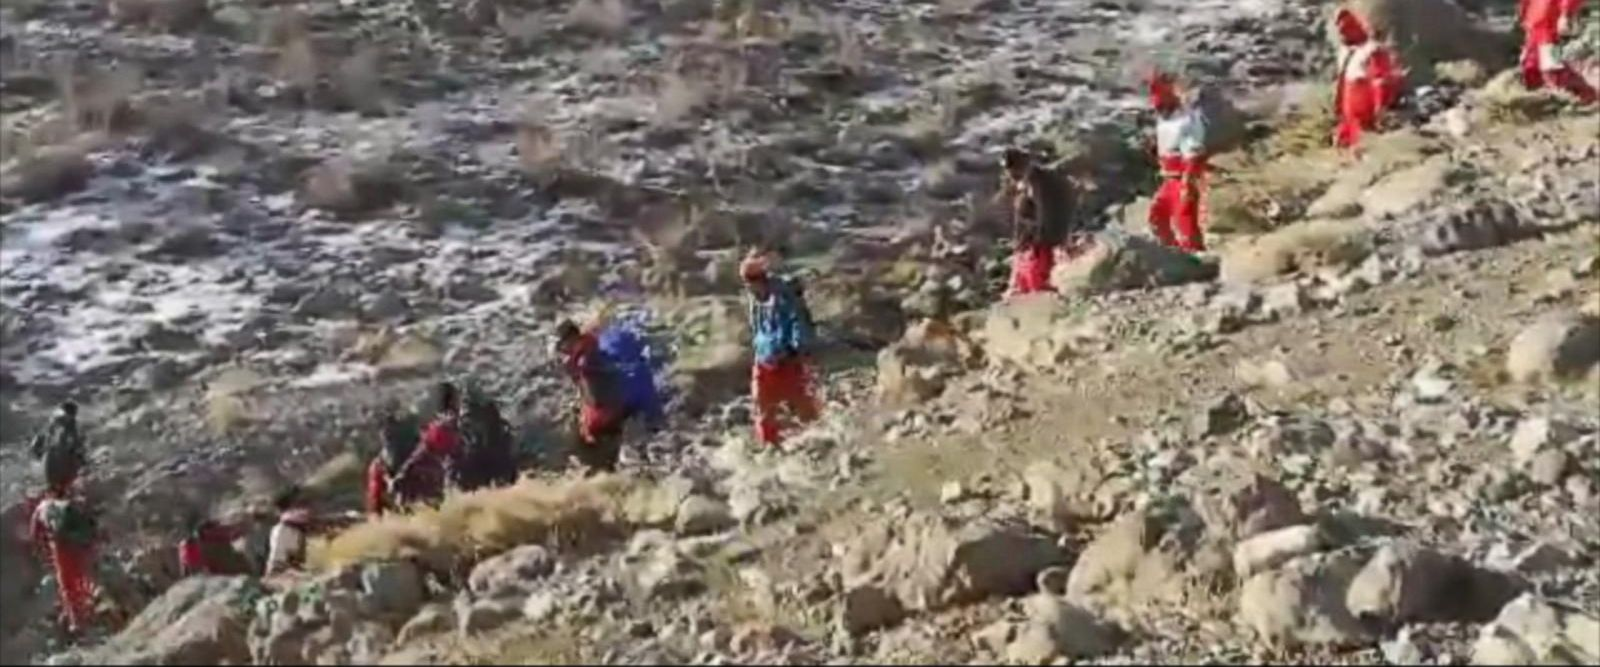 VIDEO: Time is ticking as Iranian rescue teams search the Zagros Mountains trying to locate the wreckage of a missing Aseman Airliner that crashed there on Sunday morning with 66 people on board.